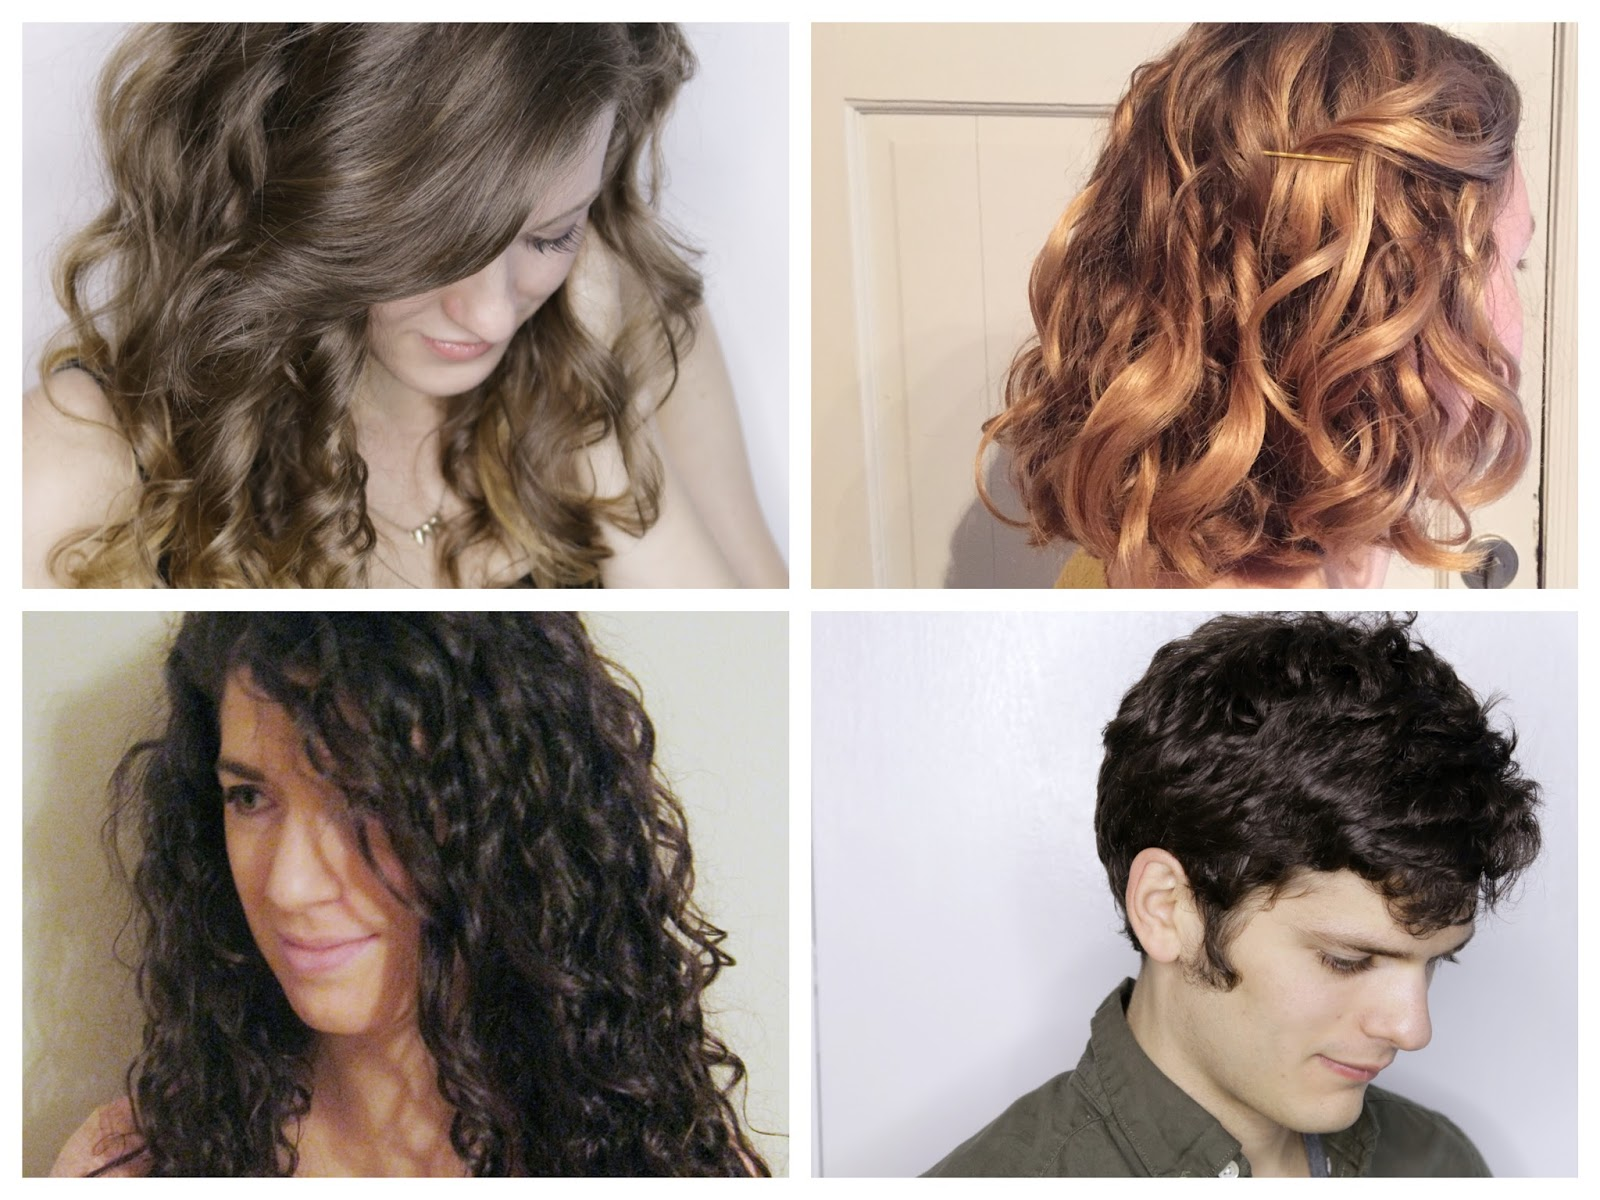 Blackberry Morning 4 Types of Curly Hair and How to Manage Them